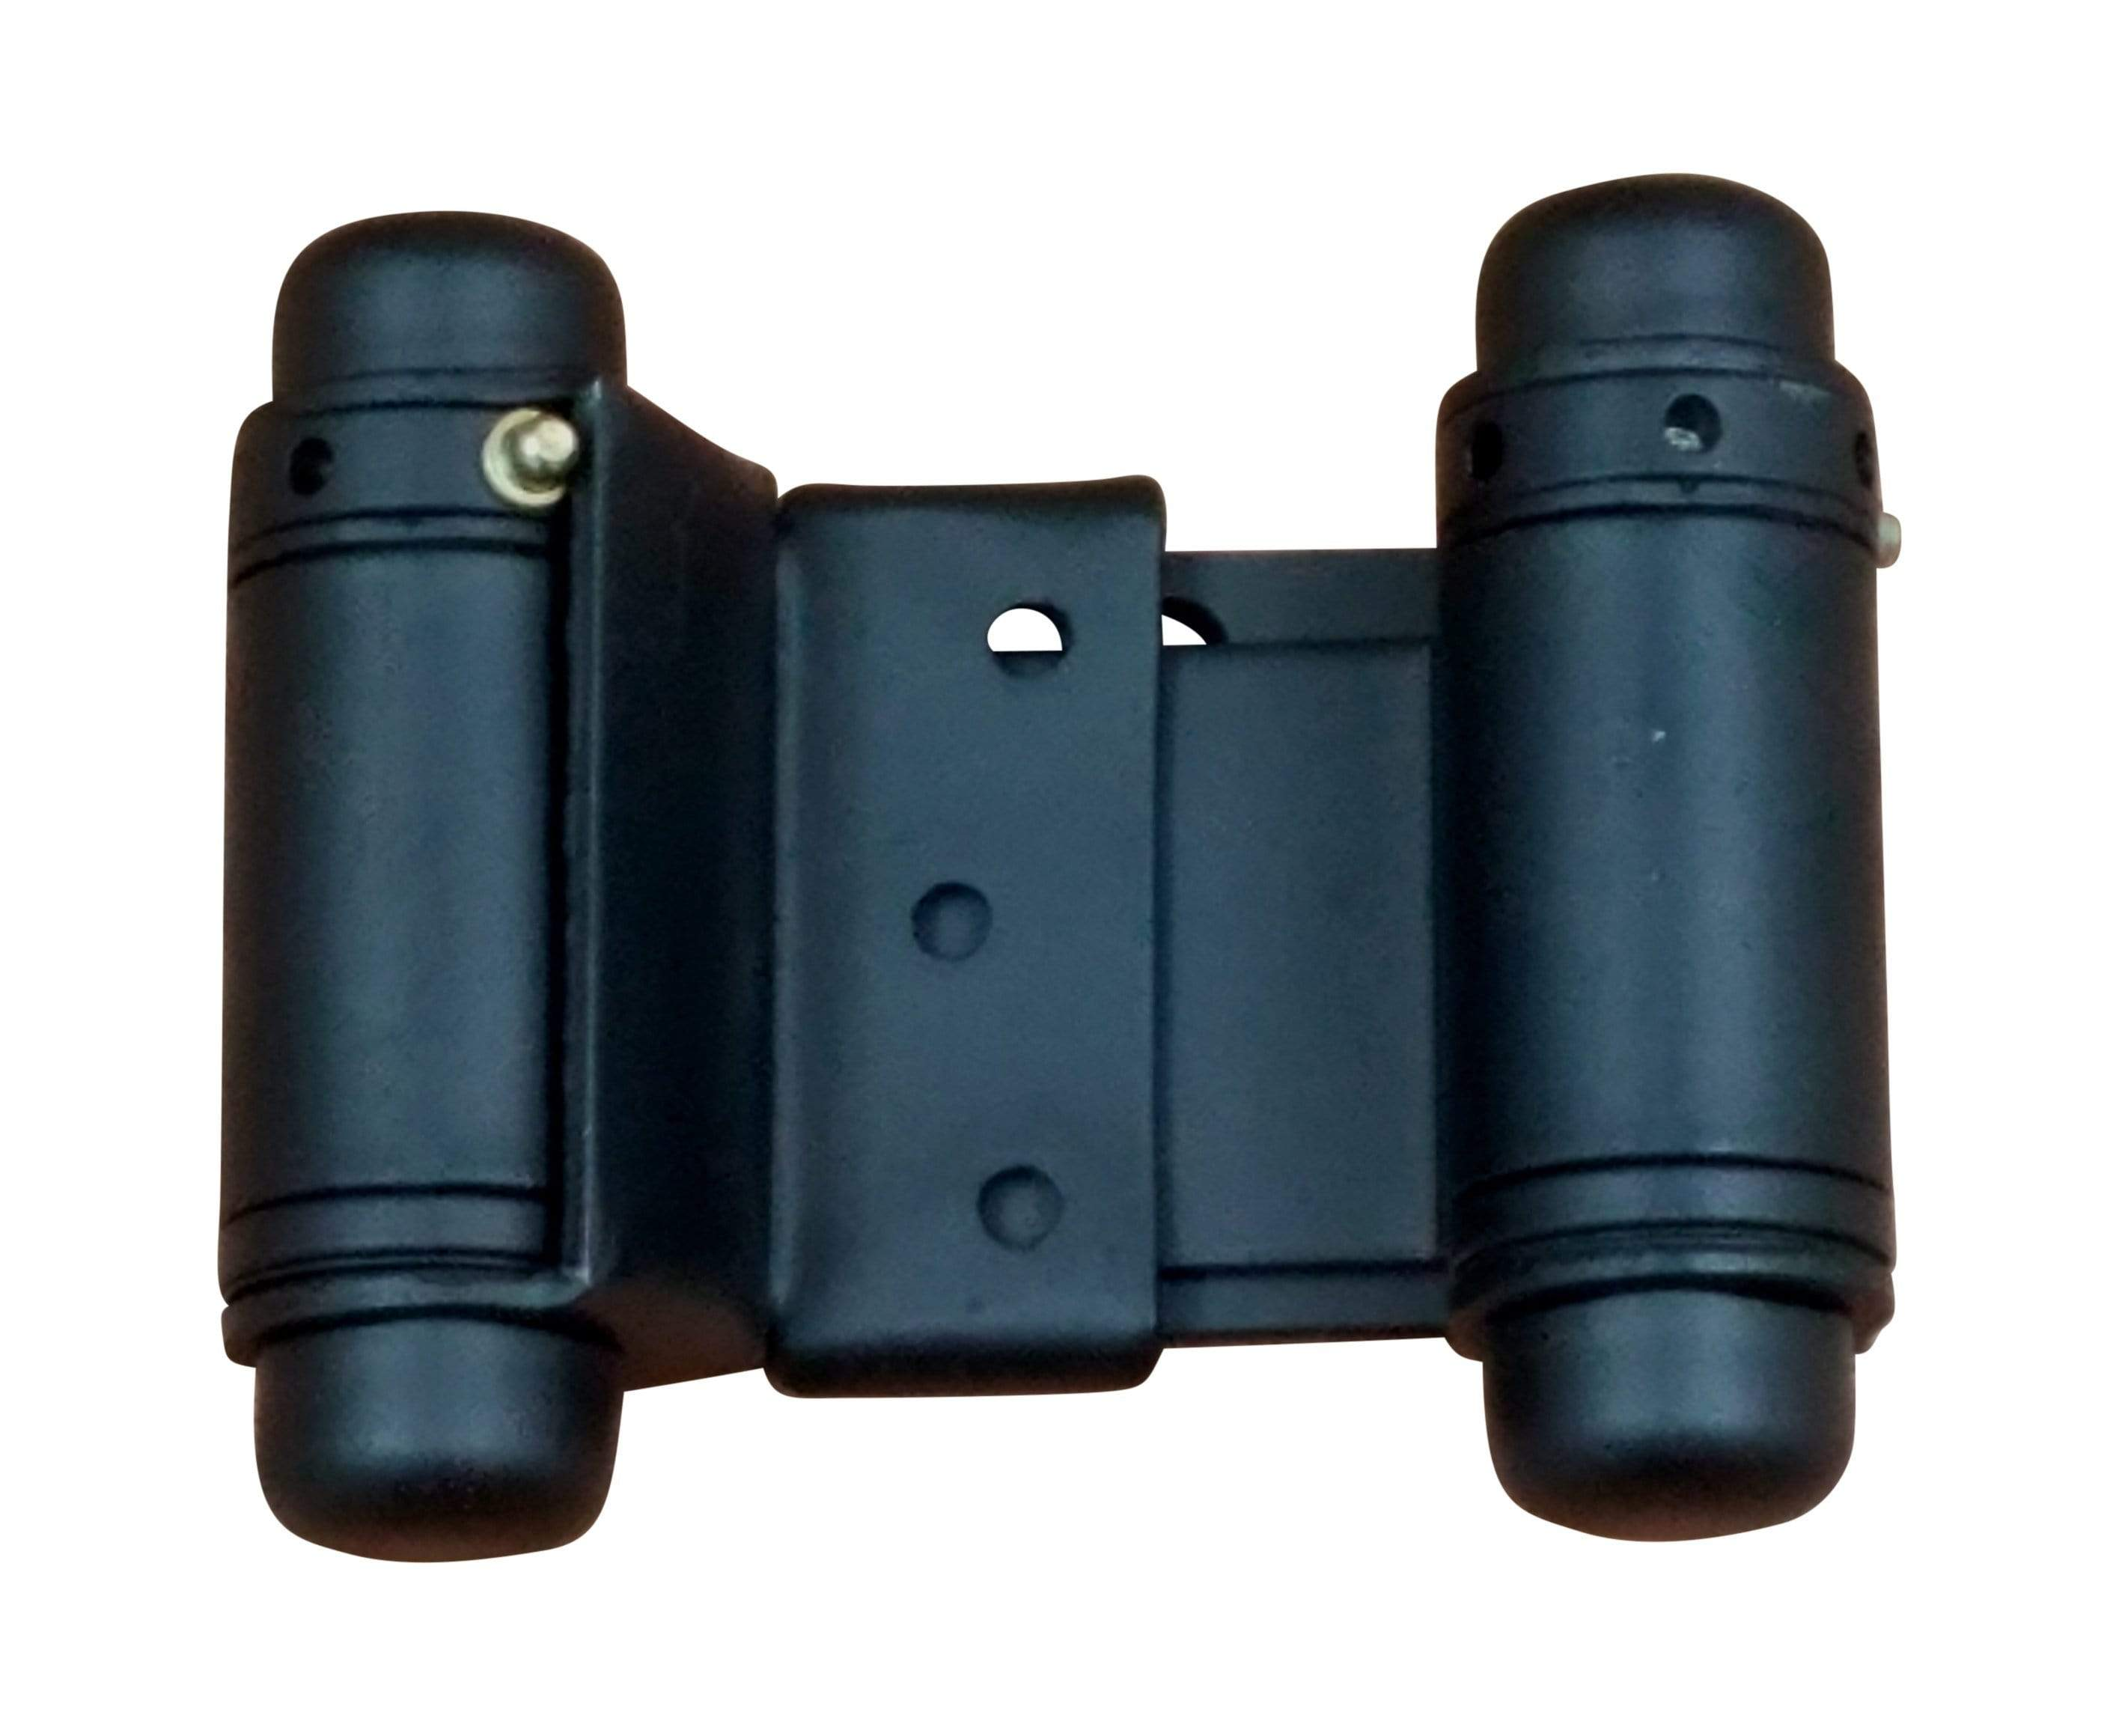 Double Acting Spring Hinges - Adjustable - Matte Black - 2 inches to 6 inches